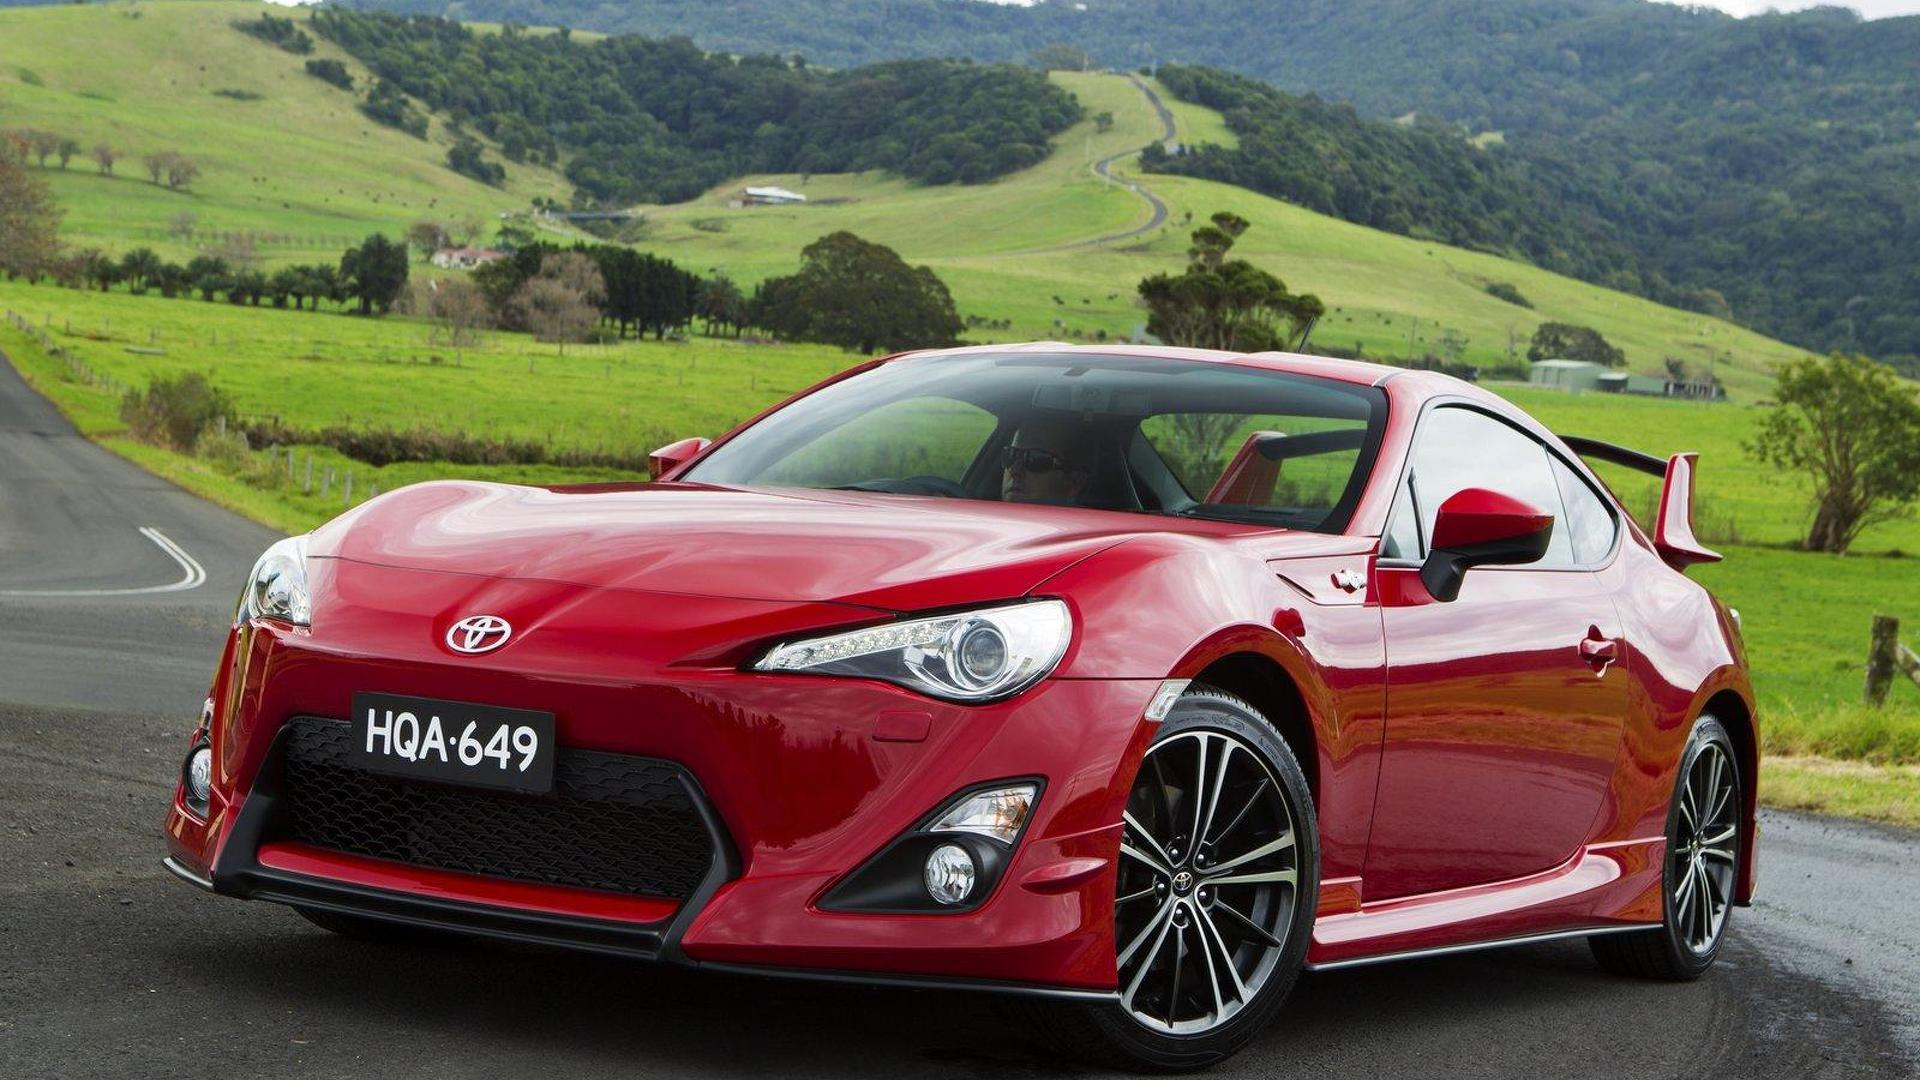 TRD considering a supercharger kit for the GT 86 / FR